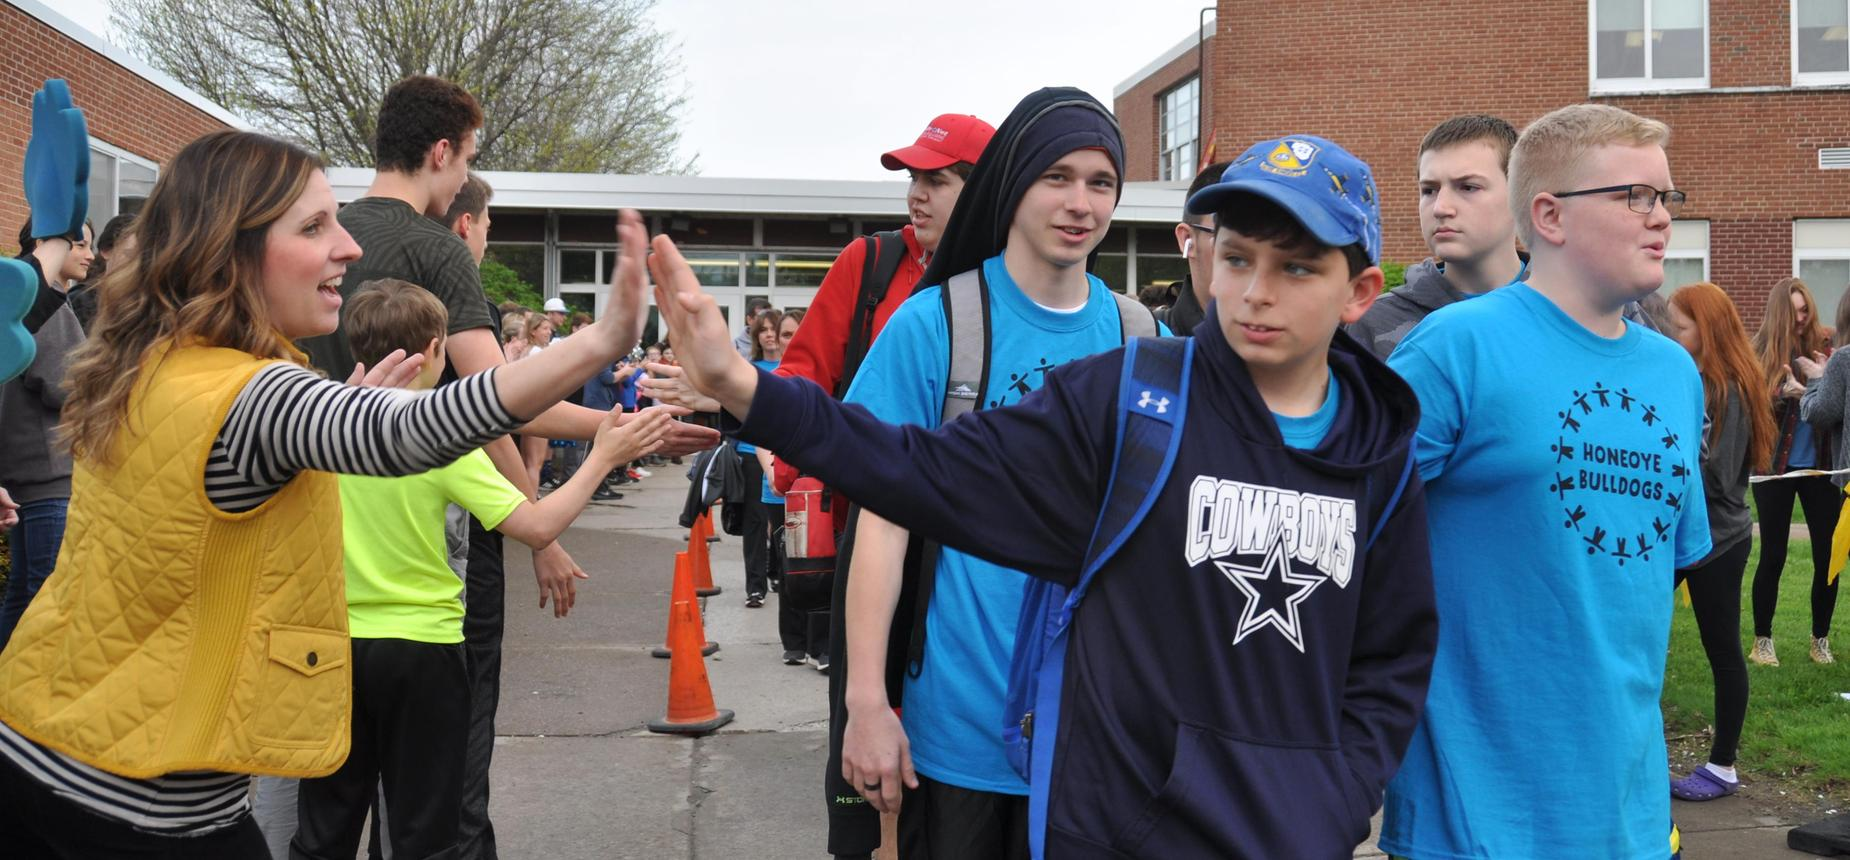 Students and staff cheering on our CORAL group as they head off to the Special Olympics